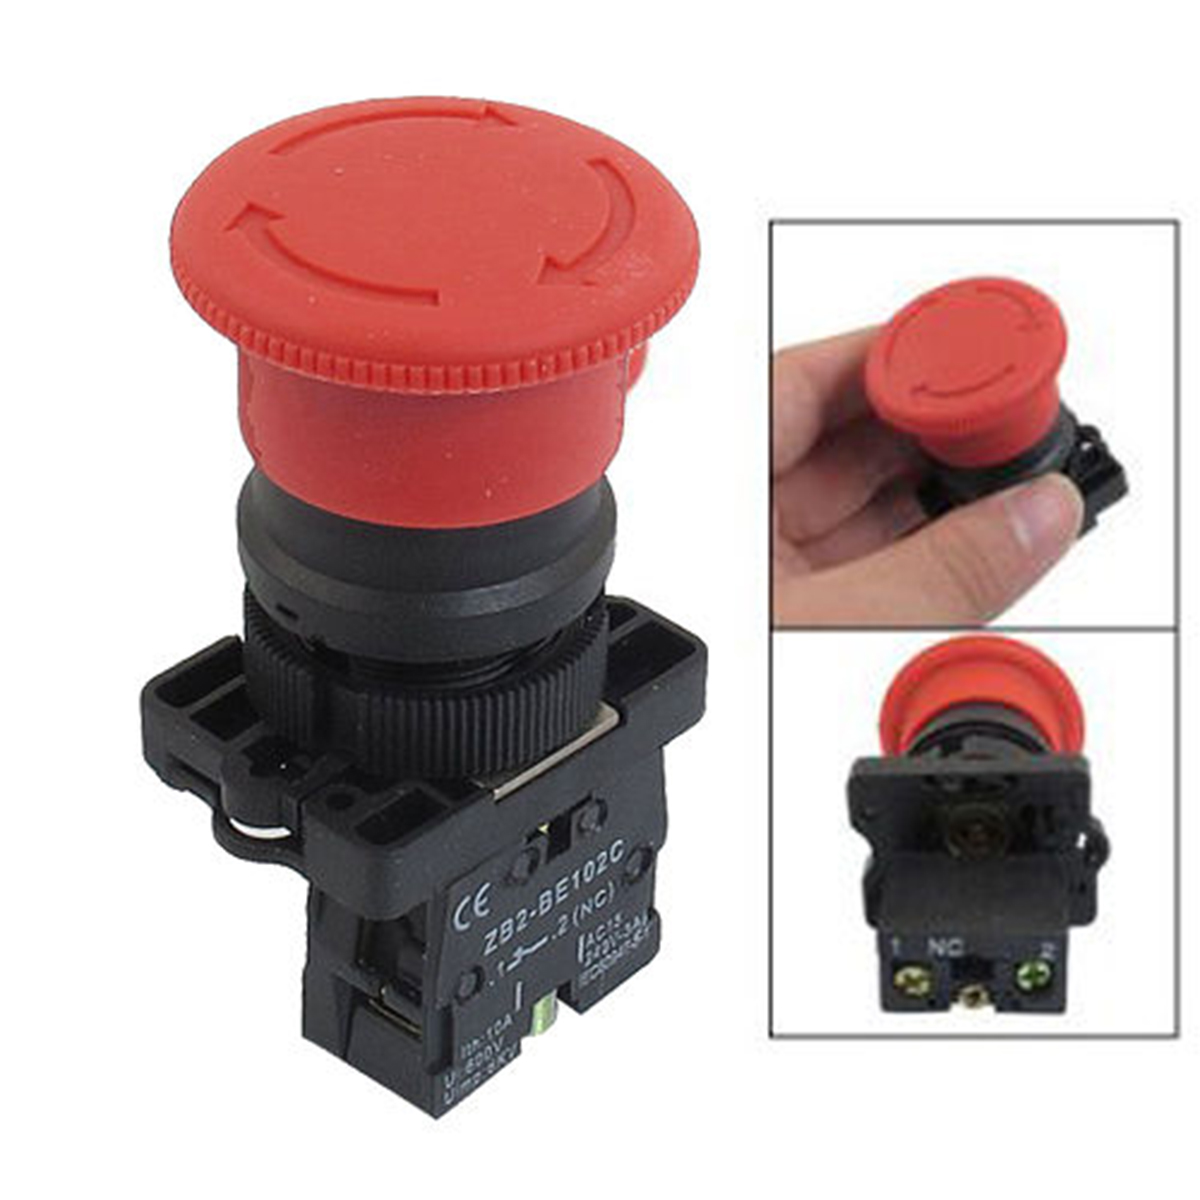 mxuteuk LED Light Voltage 110V 2 NC Waterproof IP65 Red Mushroom Latching Emergency Stop Push Button Switch AC 600V 10A with ABS IP65 Box Station BOX-02ZSD